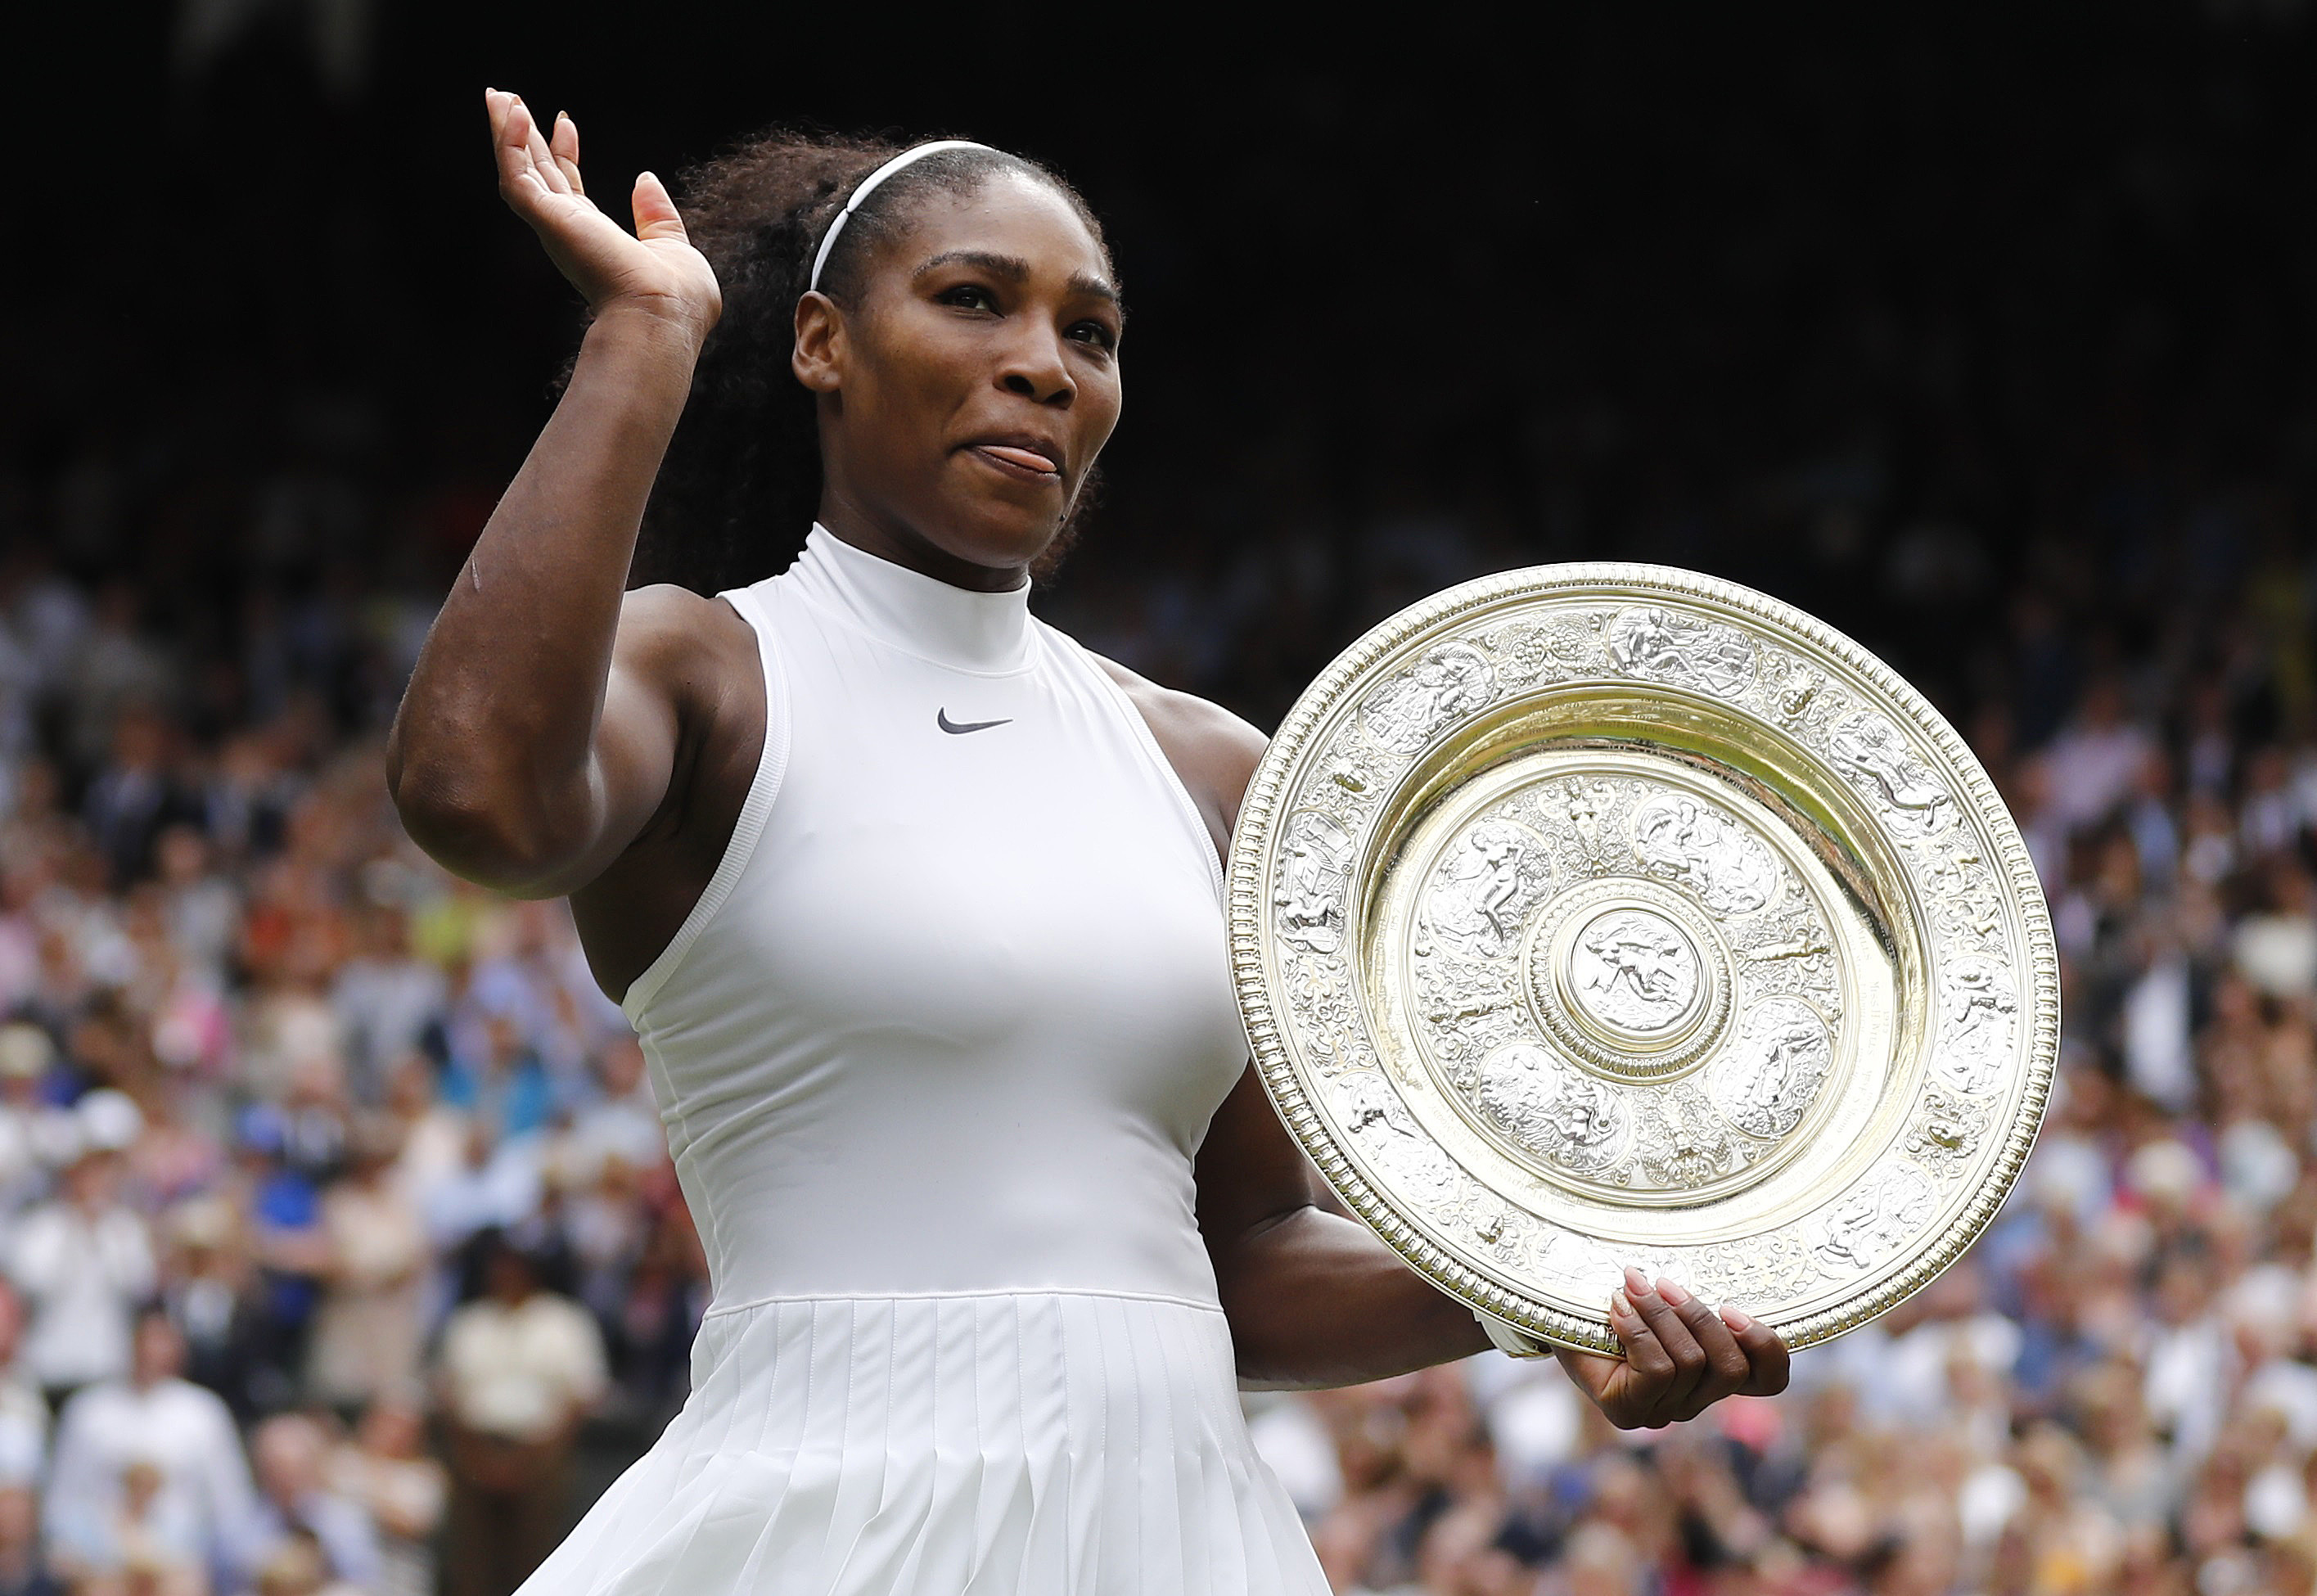 Britain Tennis - Wimbledon - All England Lawn Tennis & Croquet Club, Wimbledon, England - 9/7/16 USA's Serena Williams celebrates winning her womens singles final match against Germany's Angelique Kerber with the trophy REUTERS/Stefan Wermuth - RTSH2WO